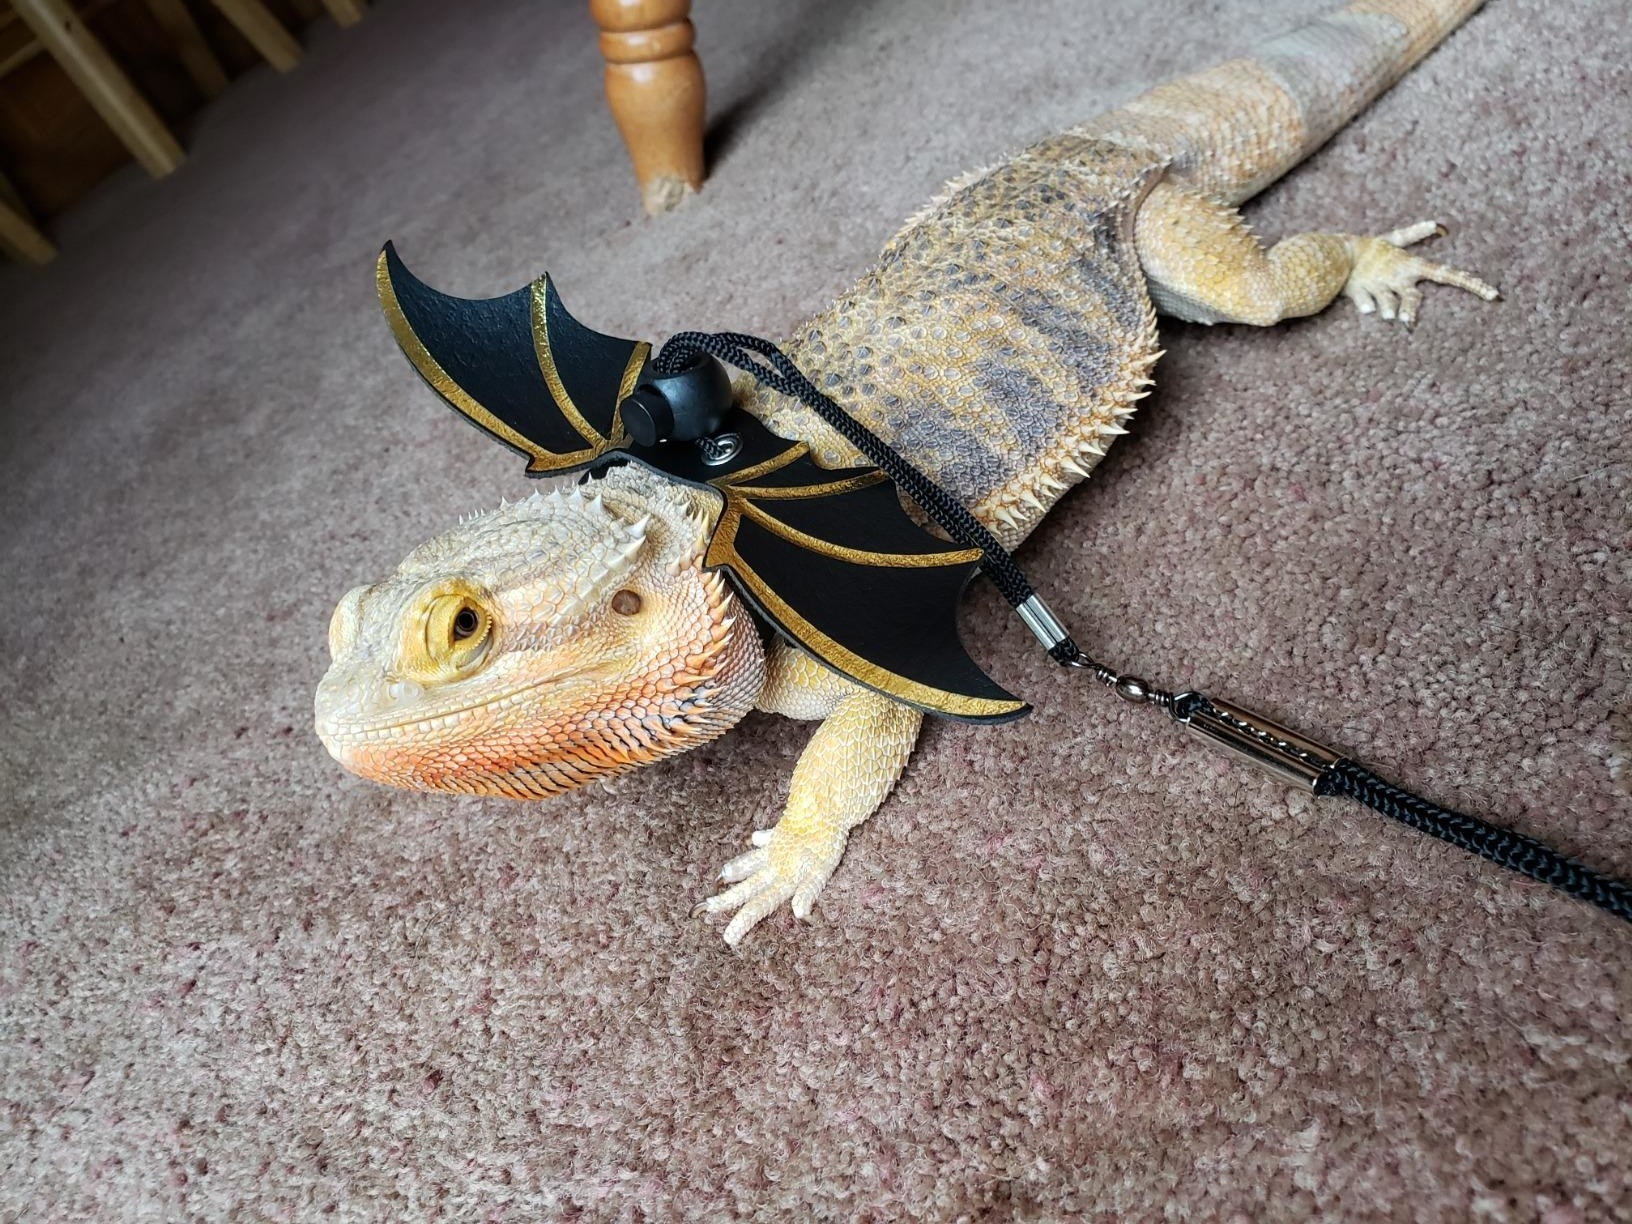 Reviewer's photo of their lizard wearing the leash